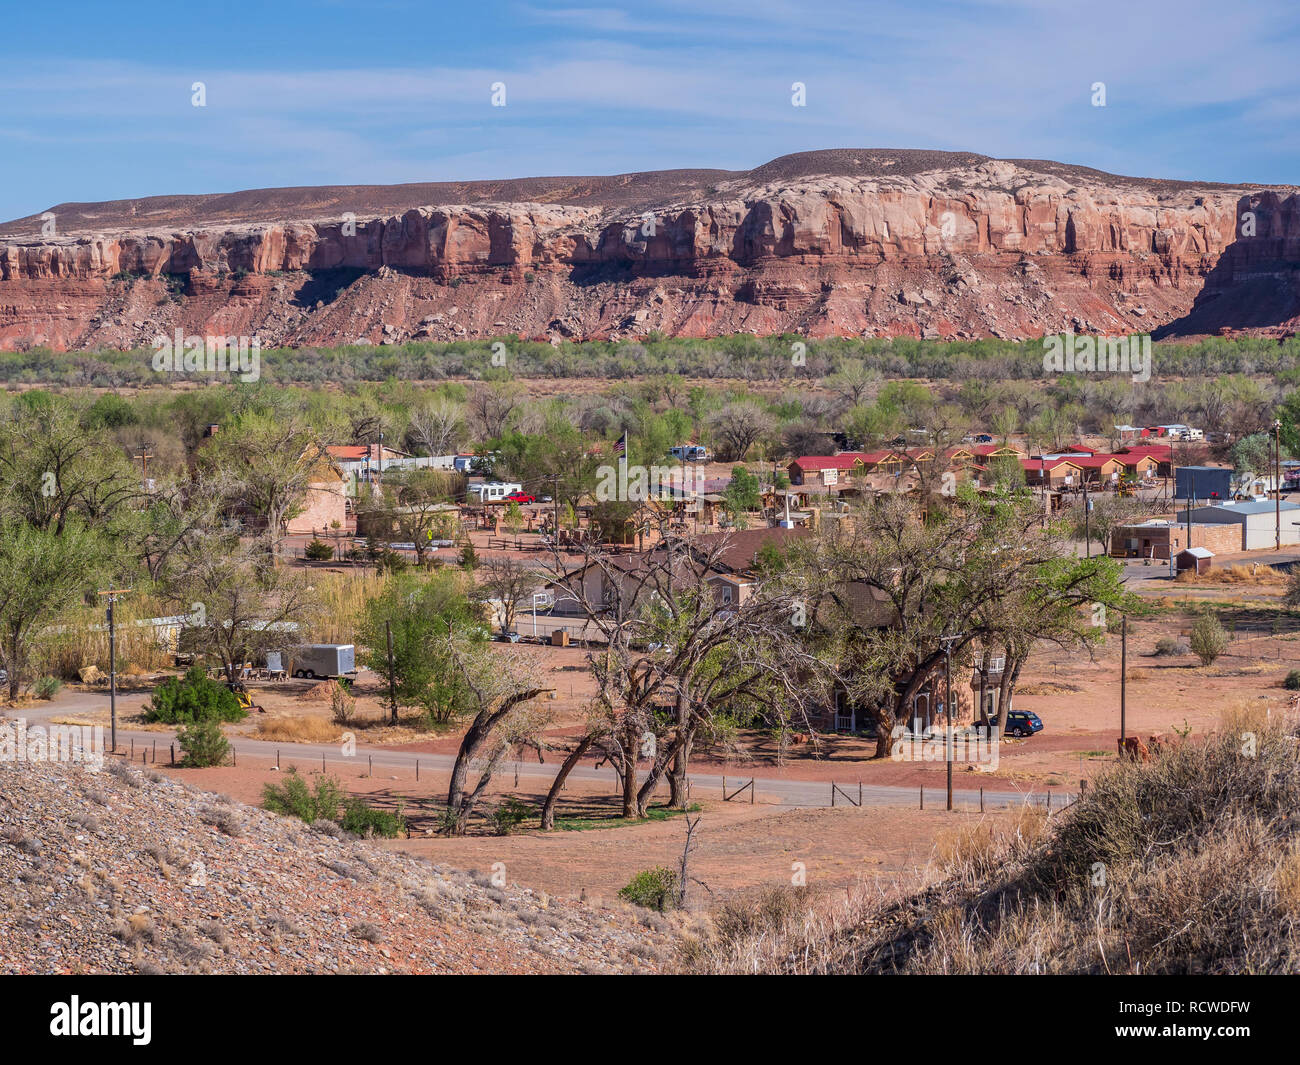 Looking down on town from the top of Cemetery Hill, Bluff, Utah. - Stock Image